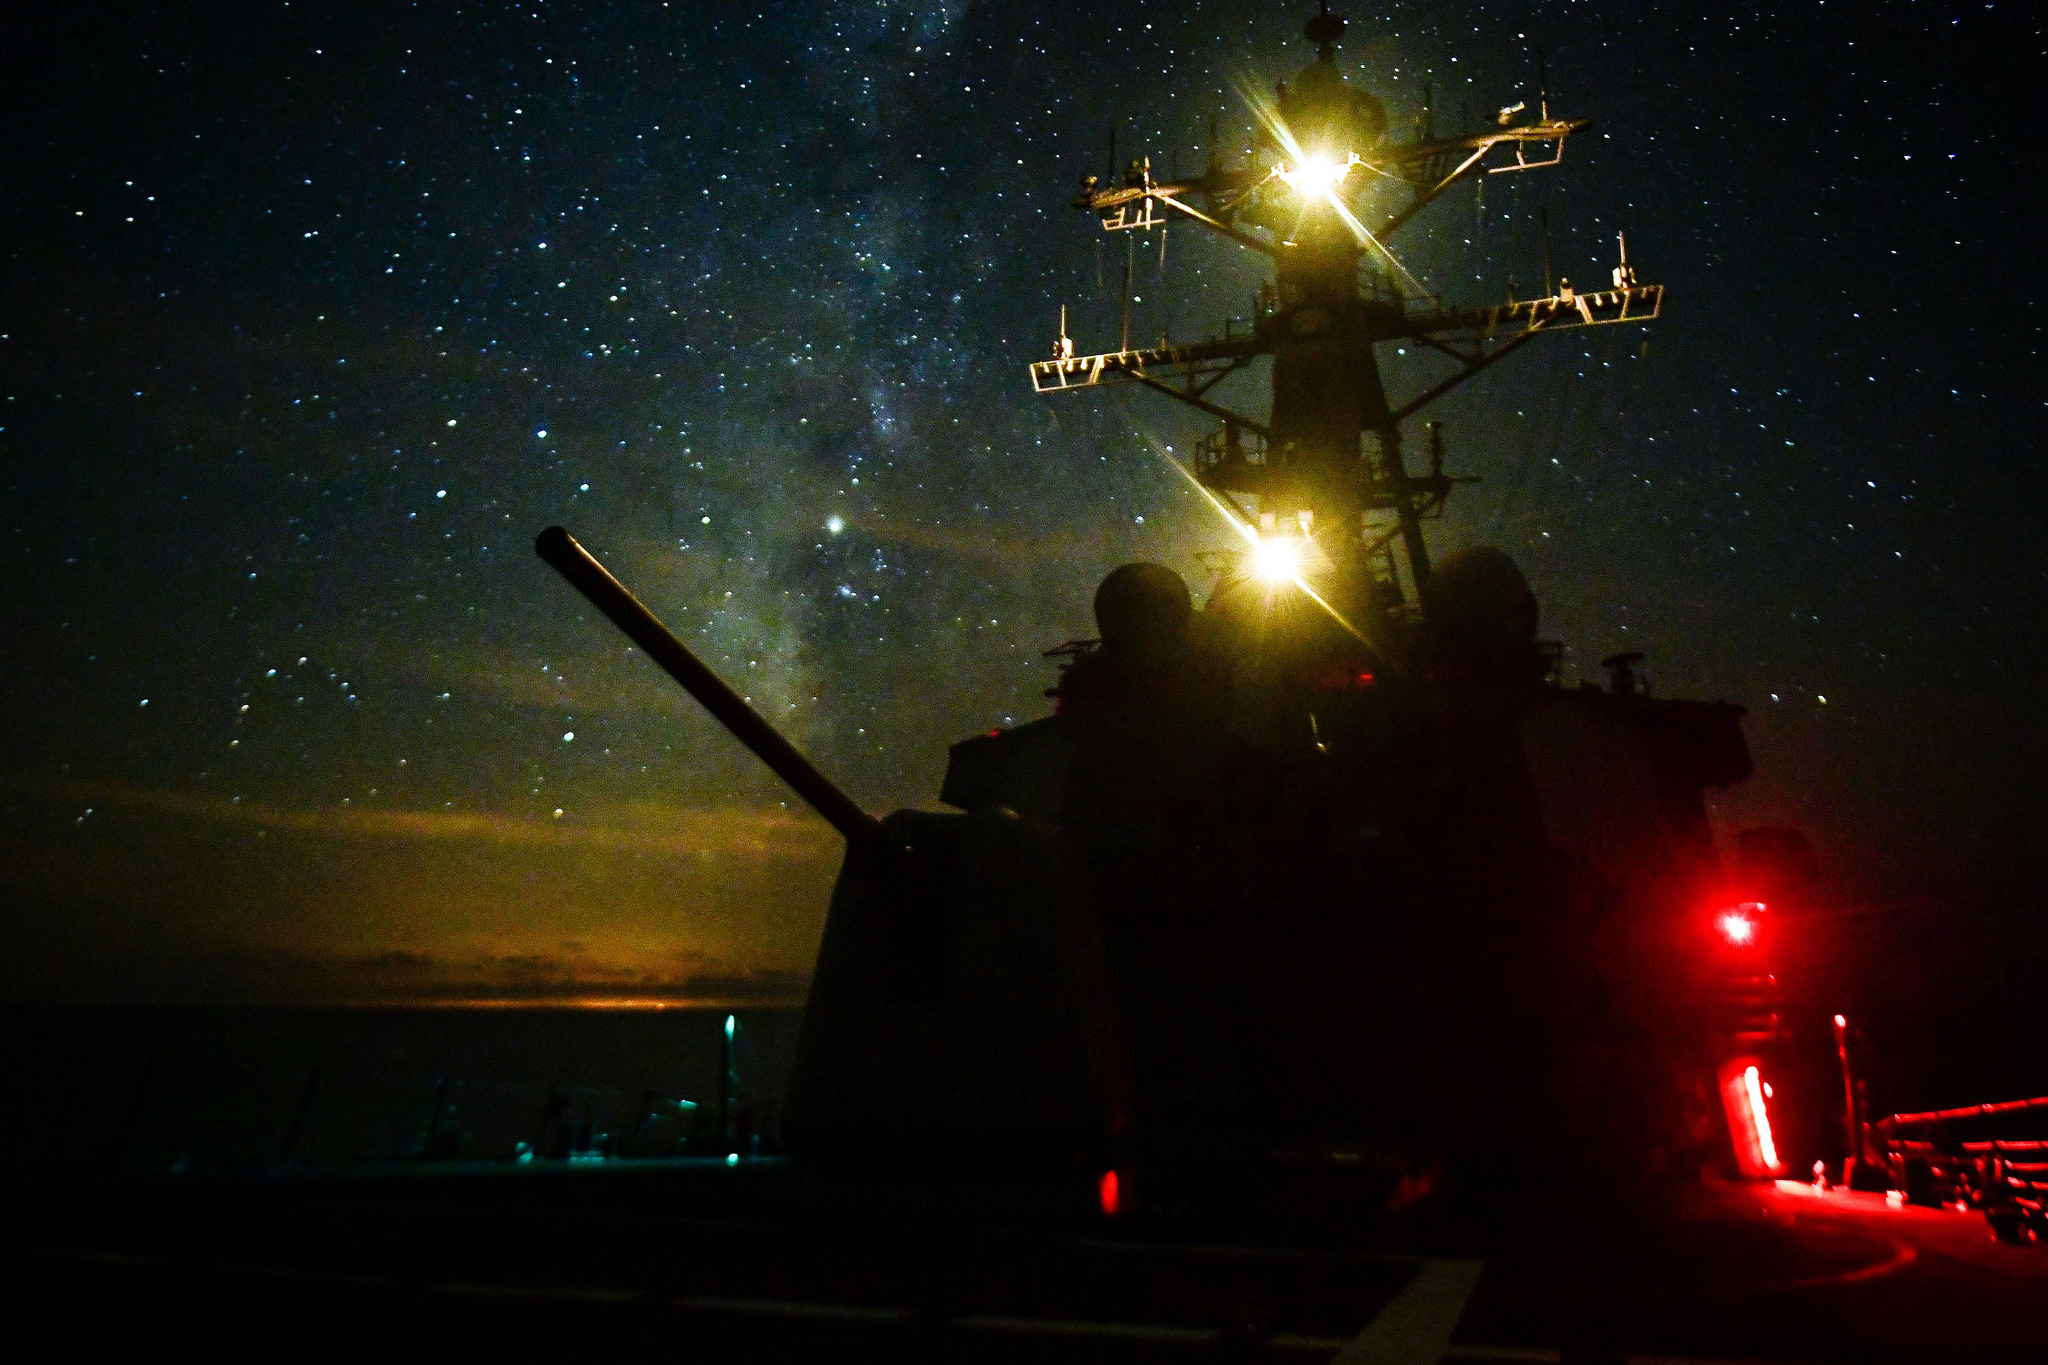 The Arleigh Burke-class guided-missile destroyer USS Ross (DDG 71) transits the Mediterranean Sea on Sept. 29, 2018. Ross, forward-deployed to Rota, Spain, is on its seventh patrol in the U.S. 6th Fleet area of operations in support of U.S. national security interests Europe and Africa. (MC3 Krystina Coffey/Navy)